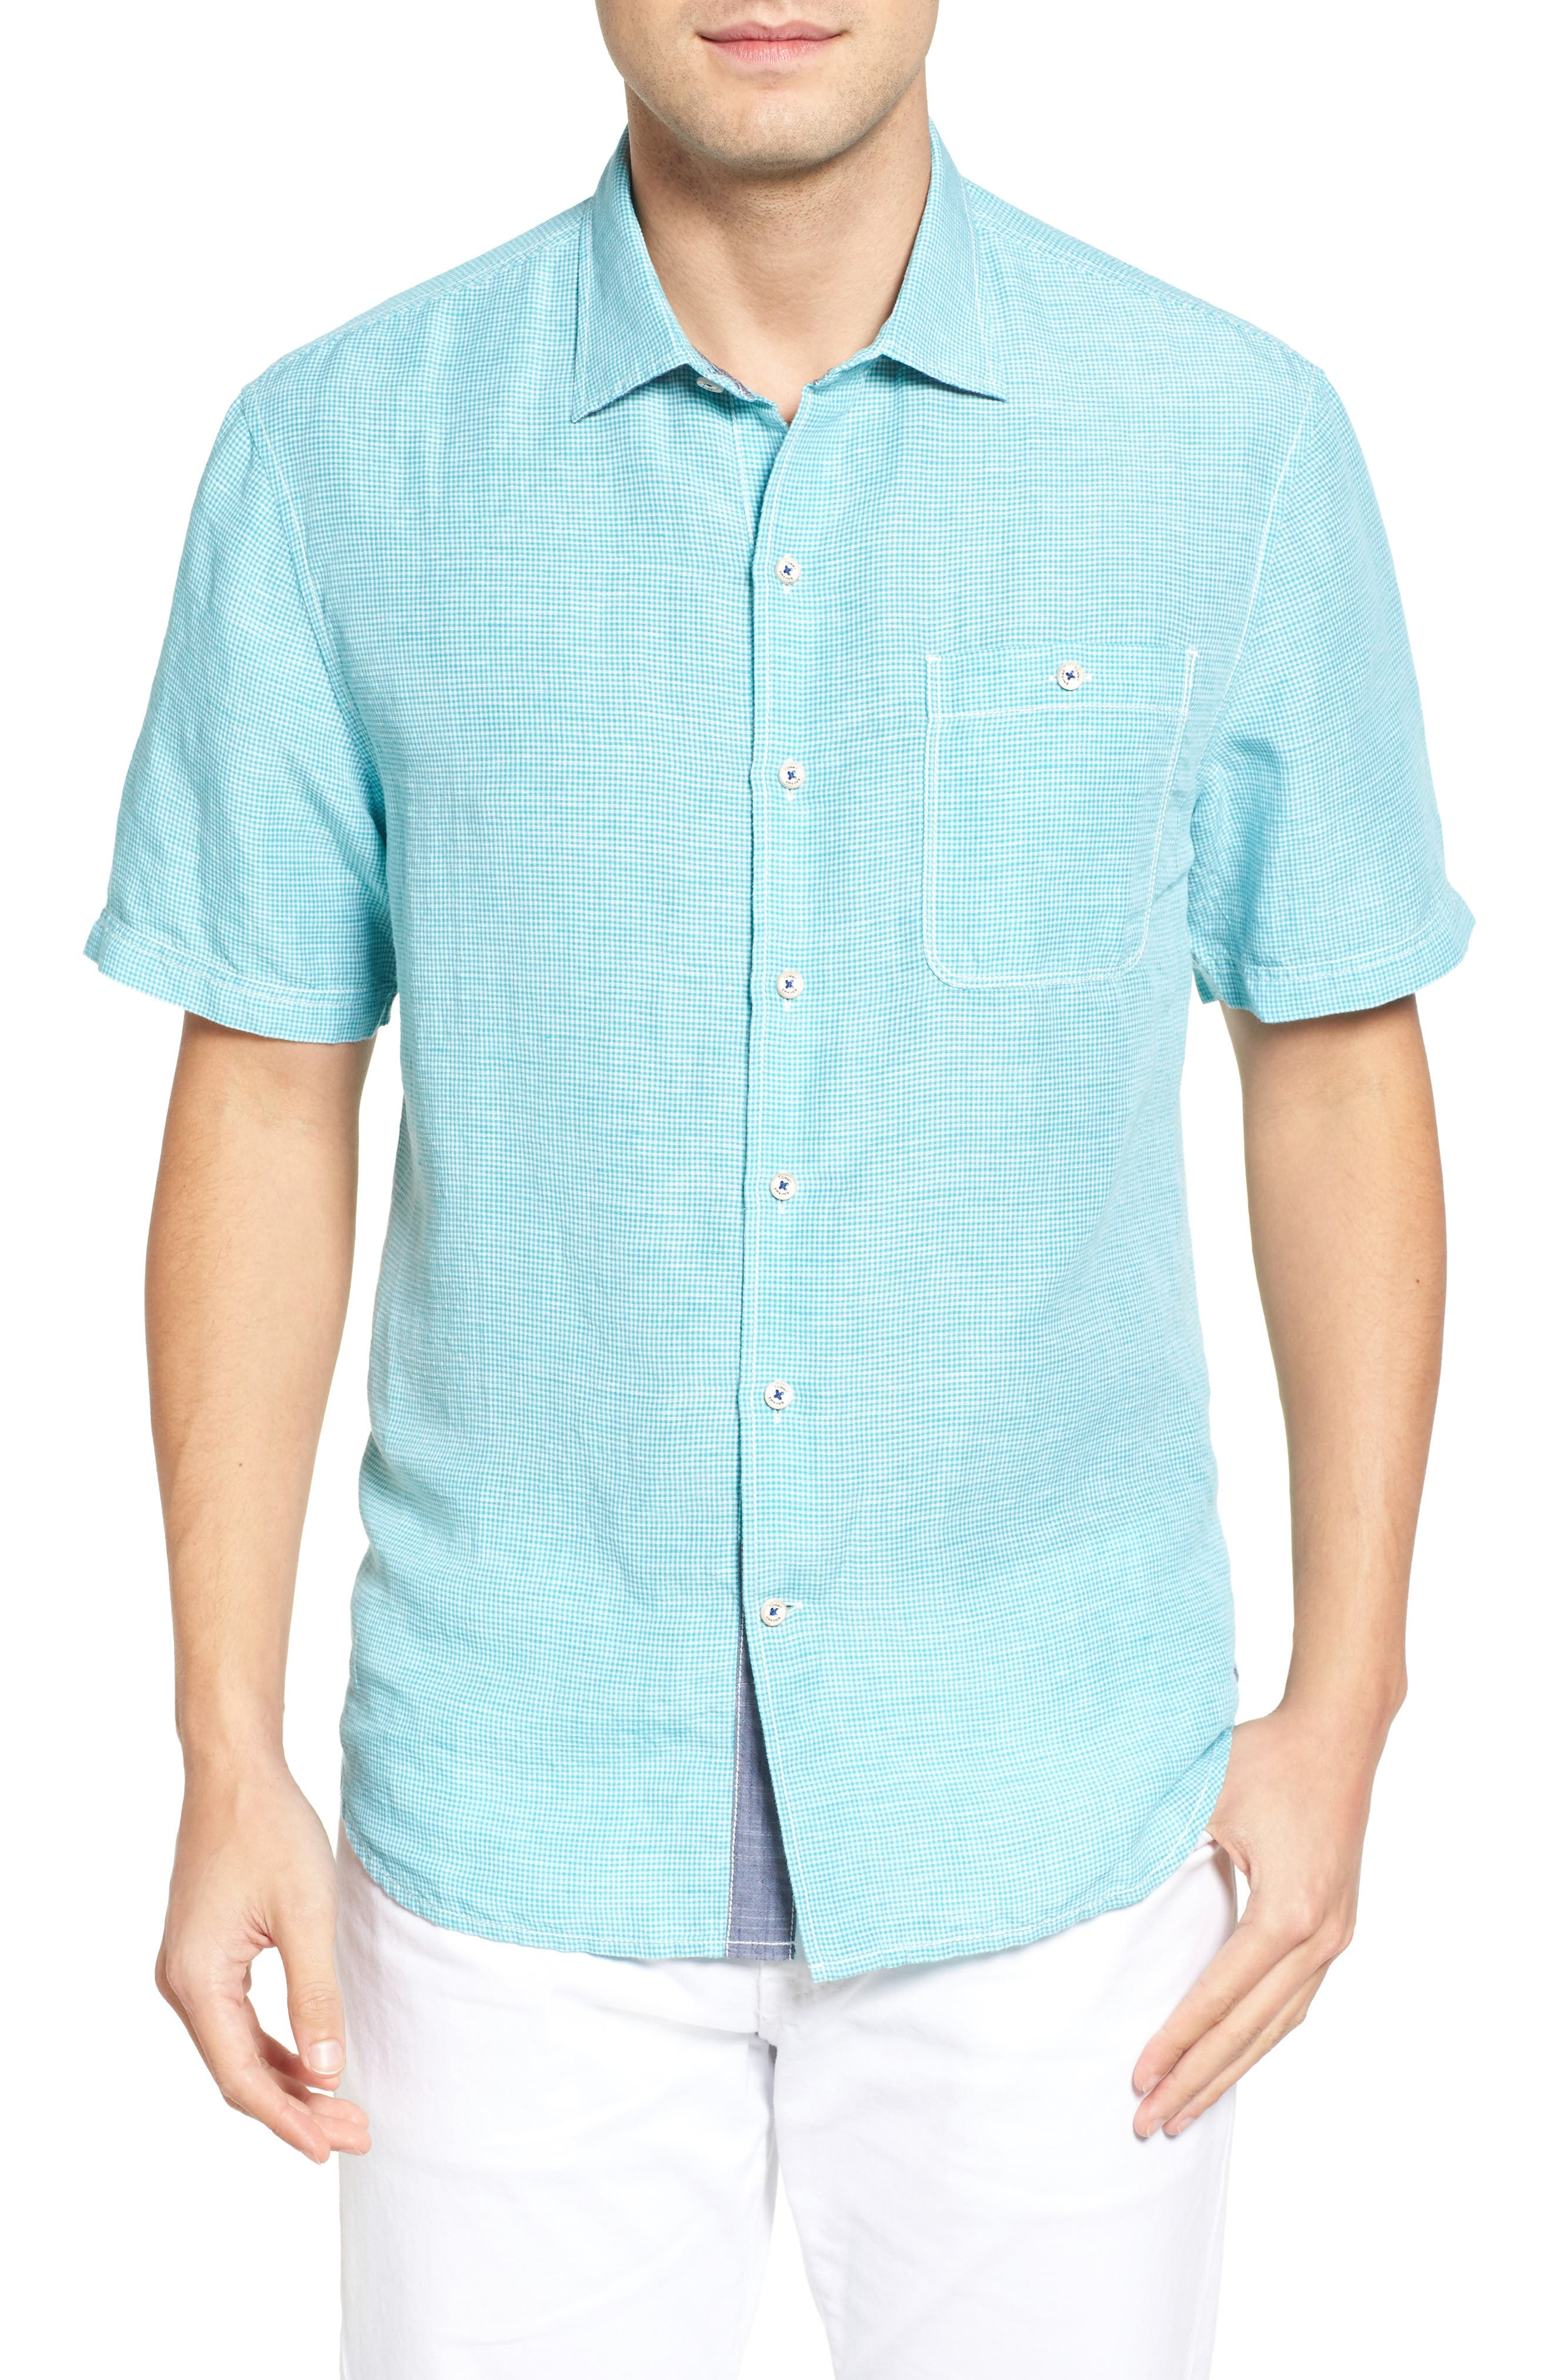 Tommy Bahama Sand Linen Check Sport Shirt (Big & Tall)